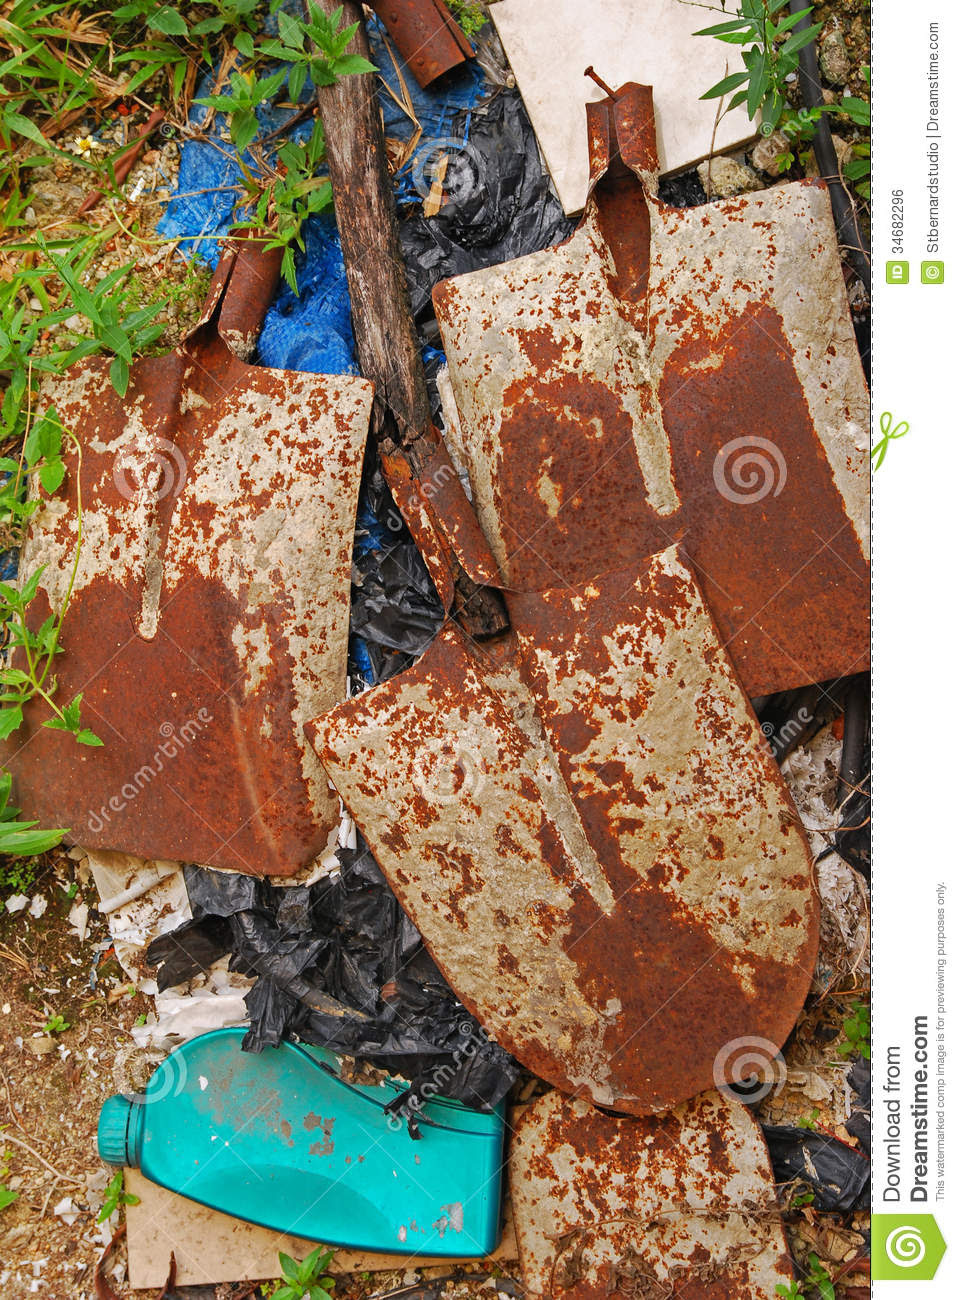 Unwanted Old Items At Home Outdoor Garden Royalty Free Stock Image ...